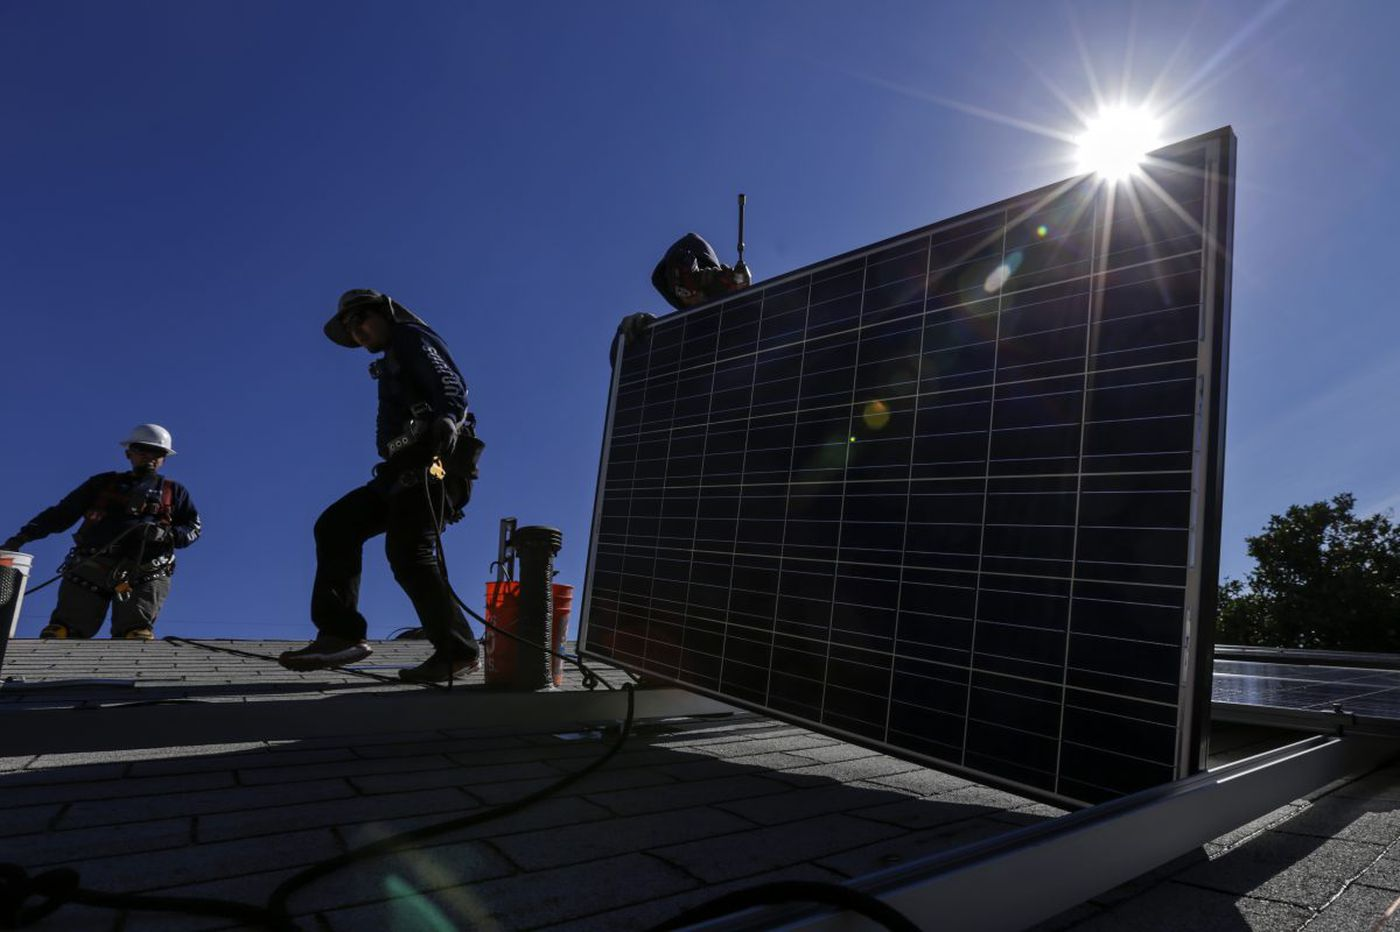 Solarize Philly helps provide 186 homeowners with rooftop solar panels